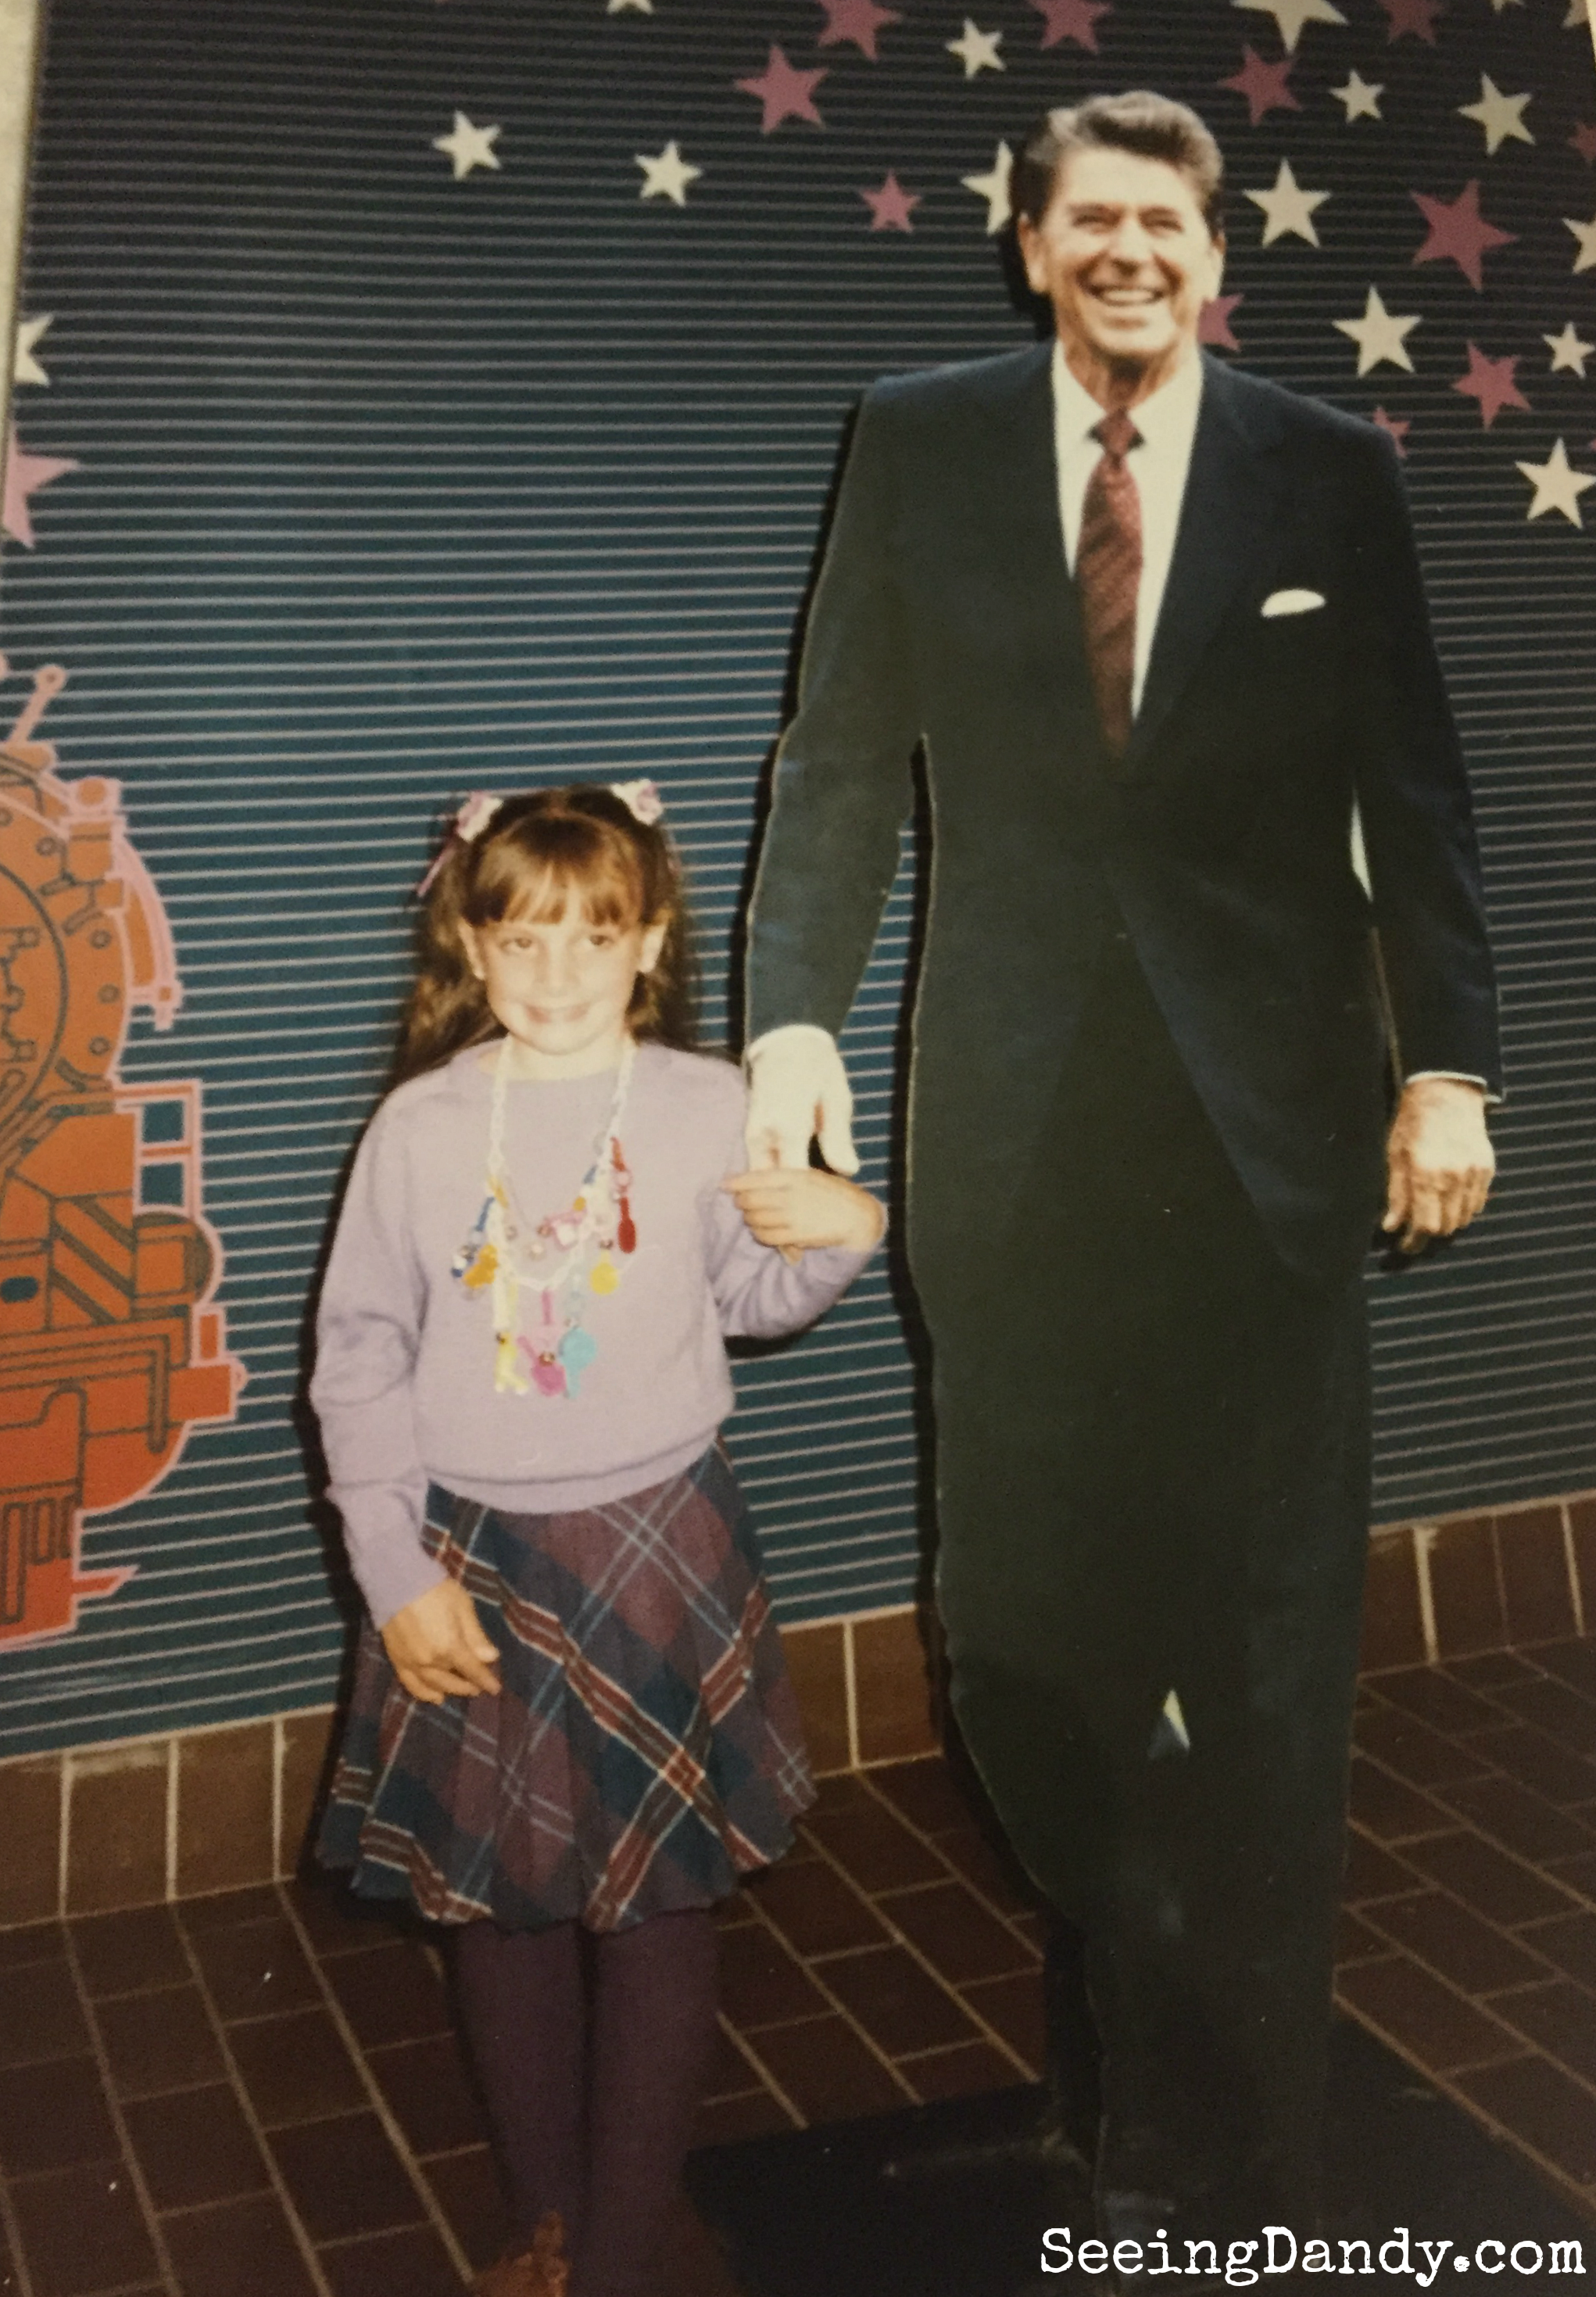 St. Louis Union Station. Girl standing with President Ronald Reagan while wearing a plastic charm necklace from the 80's.